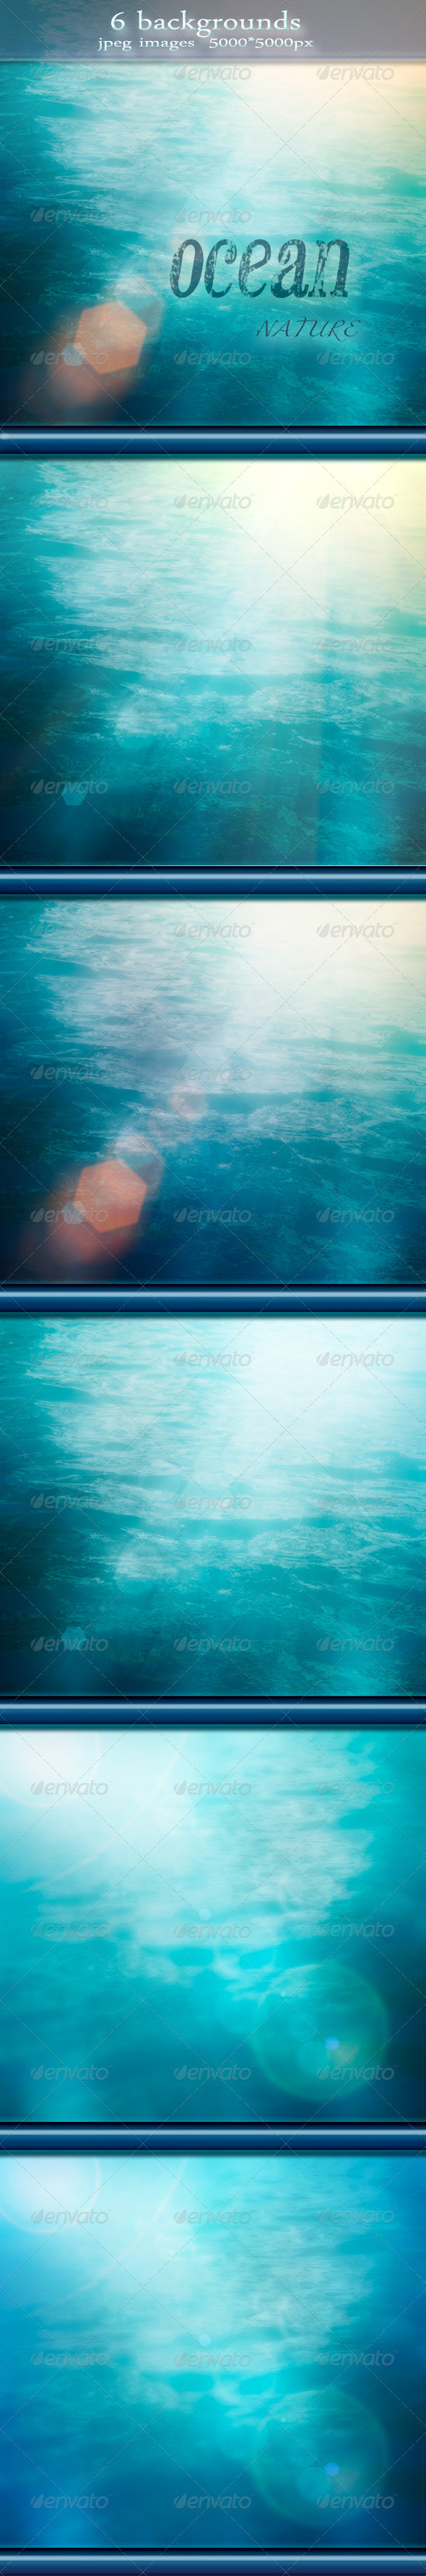 Nature Summer Ocean Backgrounds with Bokeh Effect - Nature Backgrounds